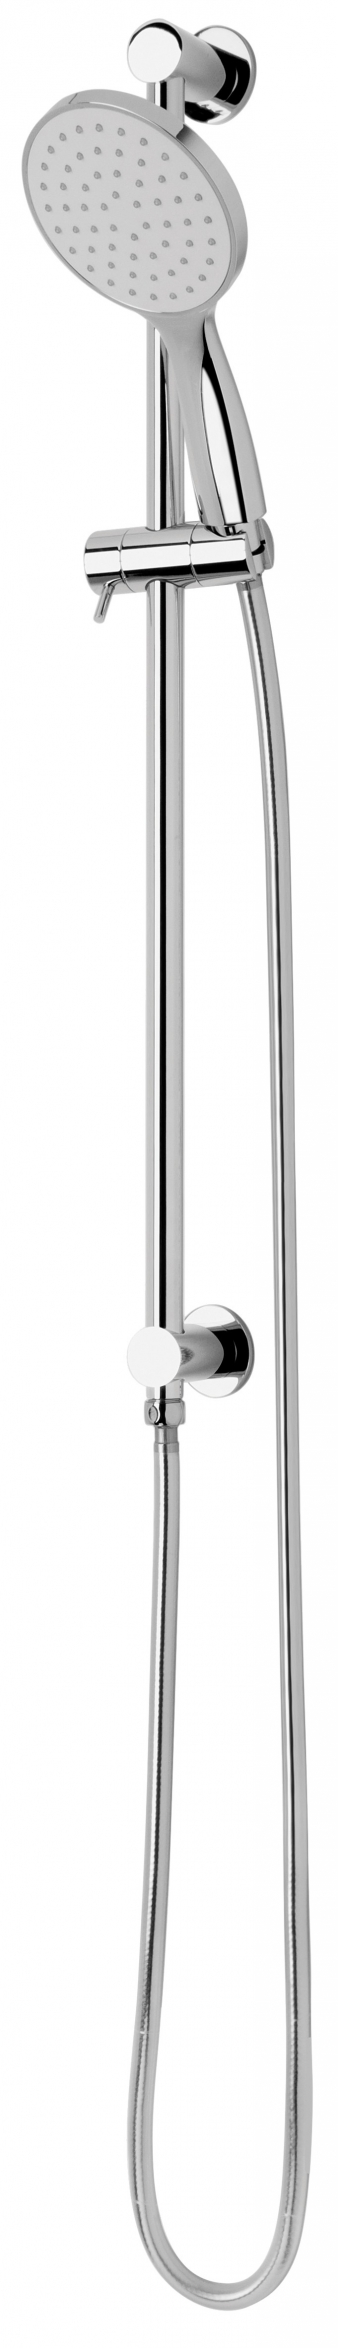 Solitaire Slide Shower SLT040 (two way installation, option 2). Image: 9